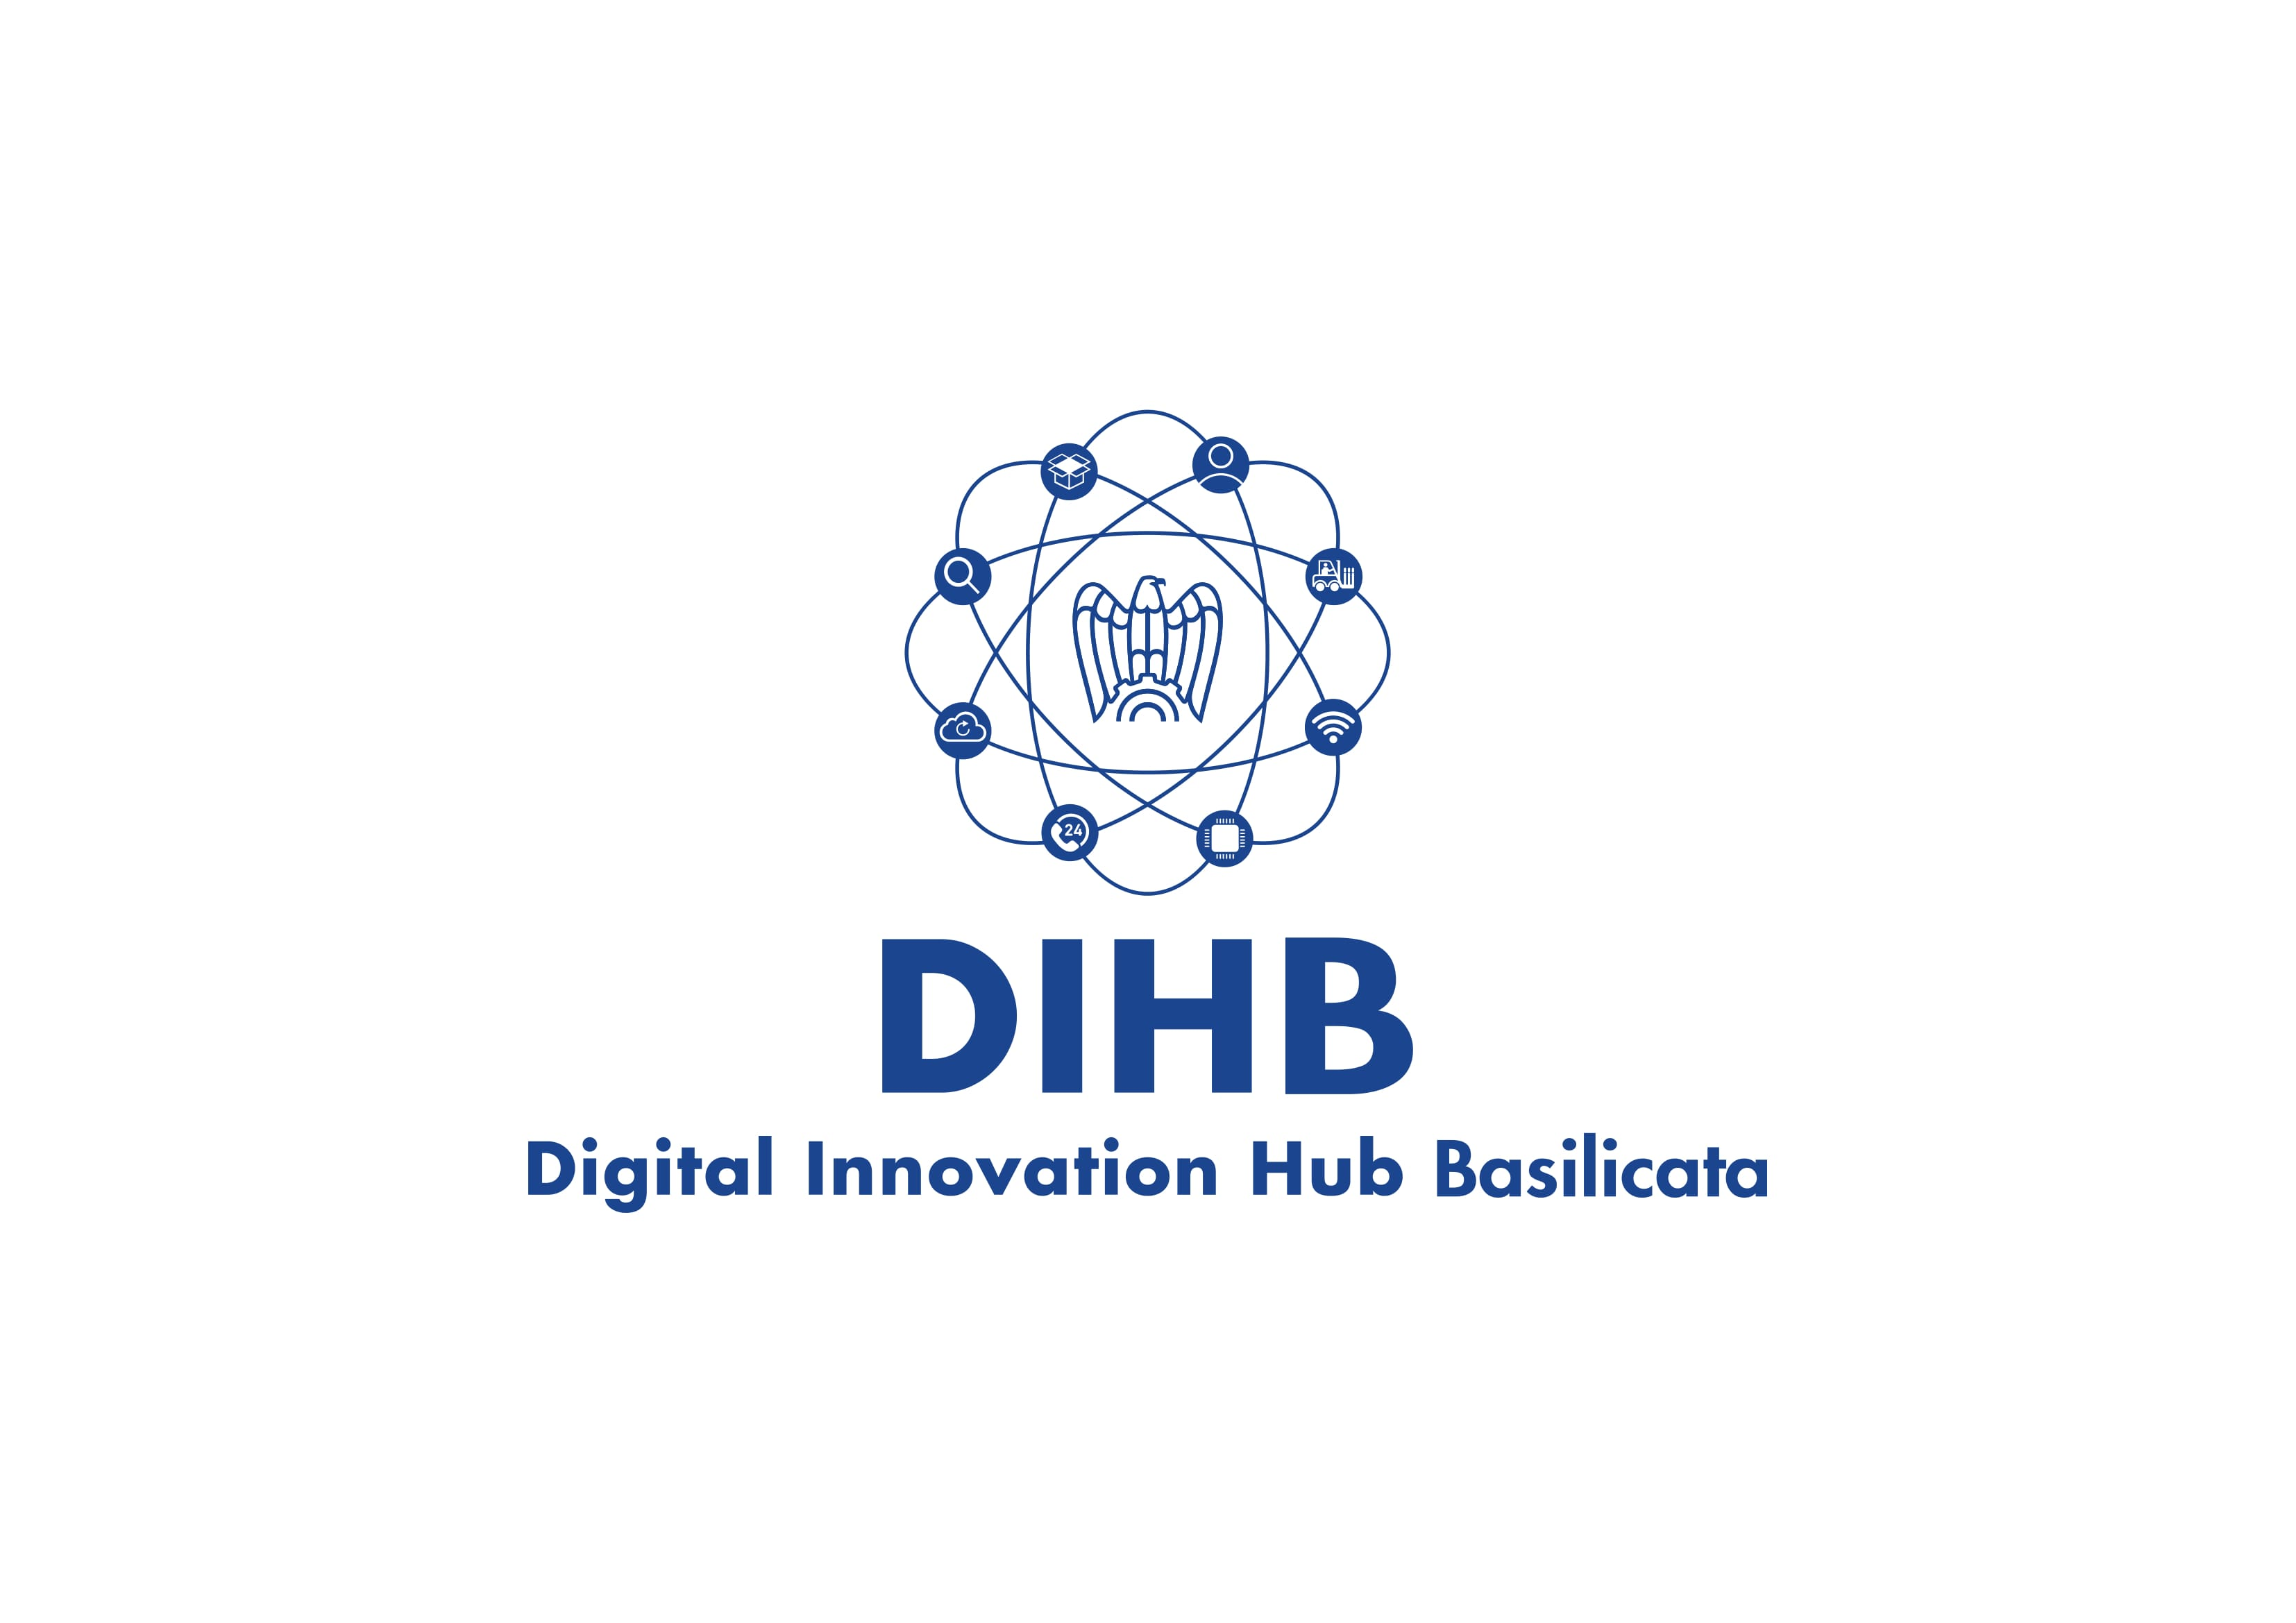 DIGITAL INNOVATION HUB BASILICATA